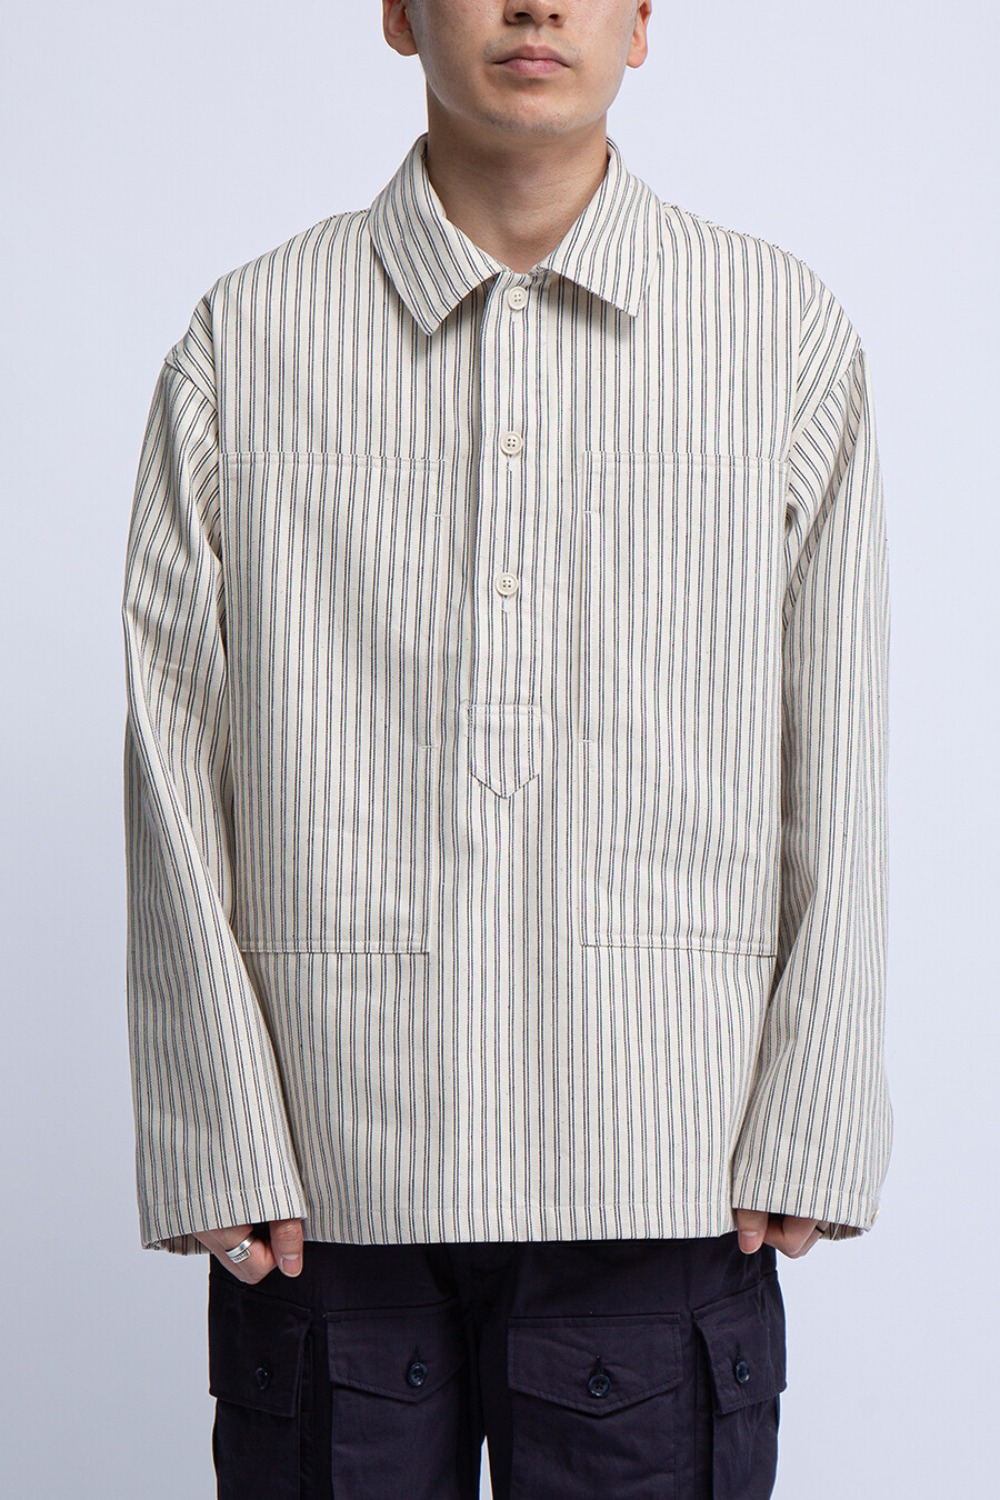 ARMY SHIRT NATURAL NAVY UNIFORM STRIPE